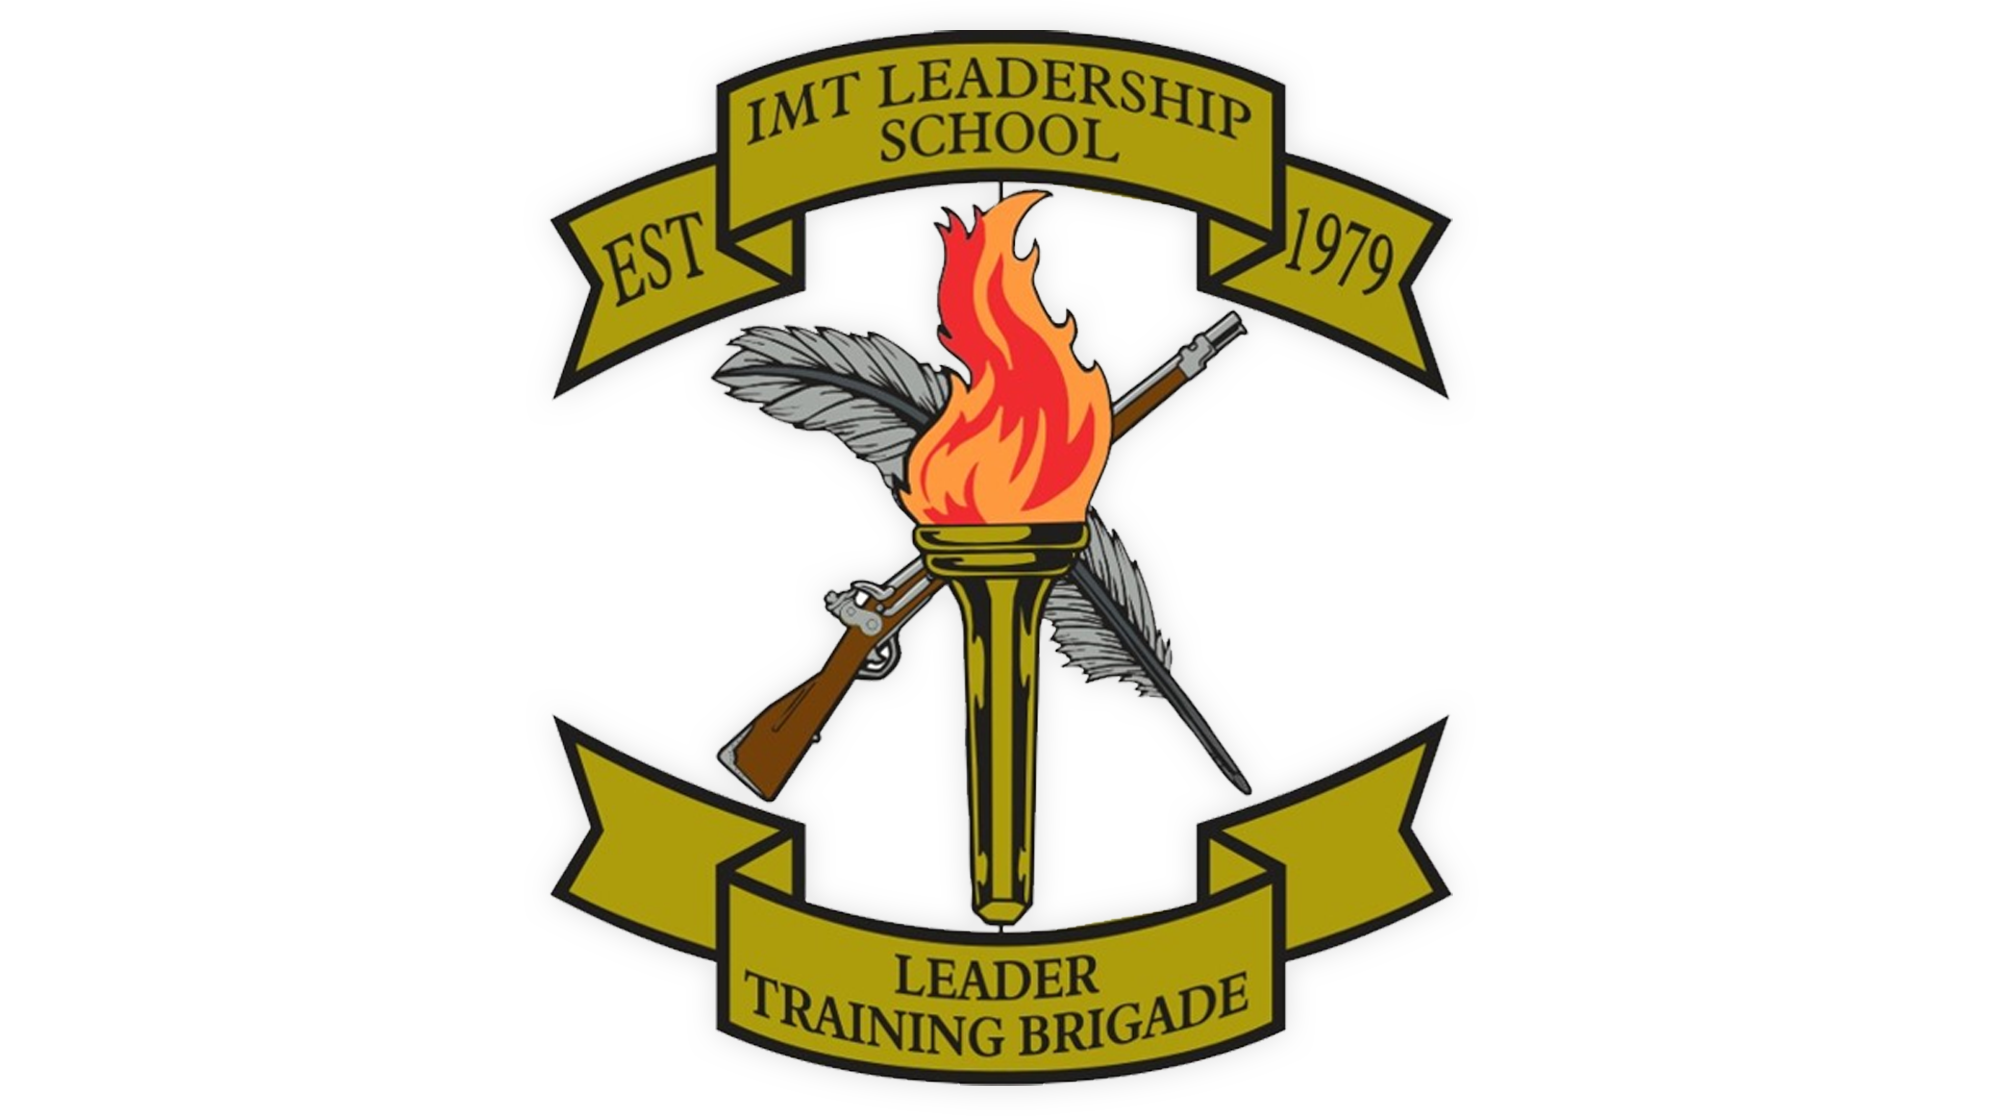 School line leader clipart graphic royalty free Initial Military Training Leadership School graphic royalty free